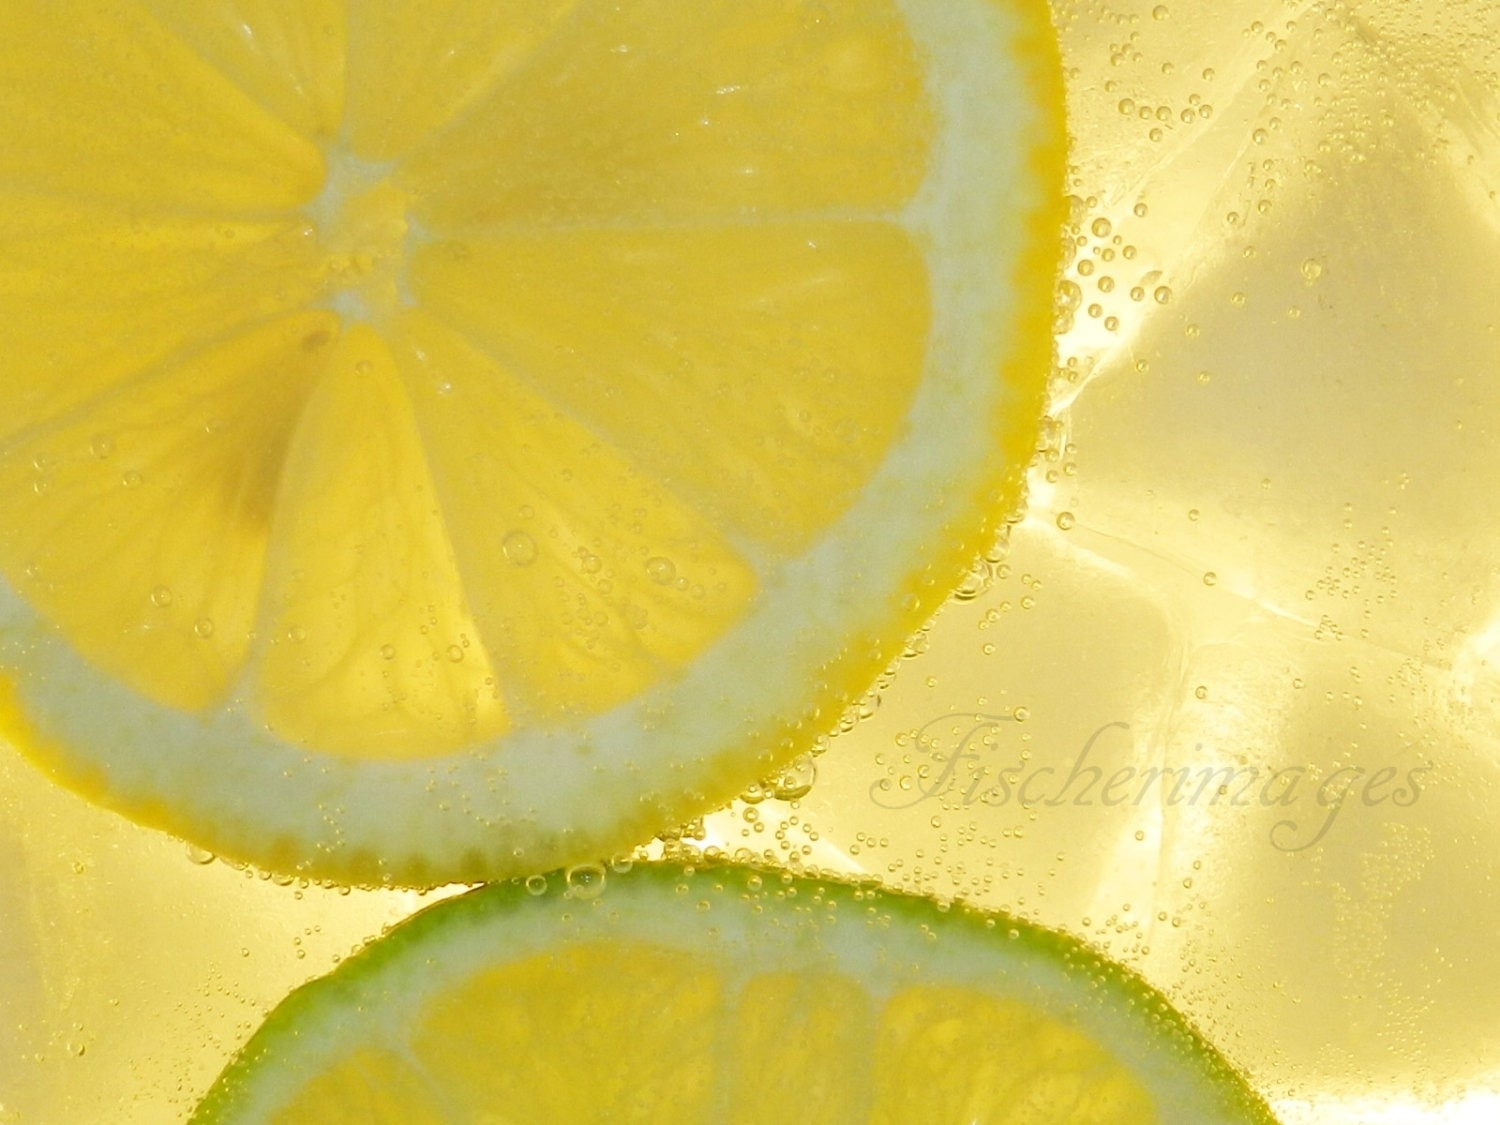 Best Of Lemon Wall Art | About My Blog Throughout Most Recent Lemon Wall Art (View 2 of 20)